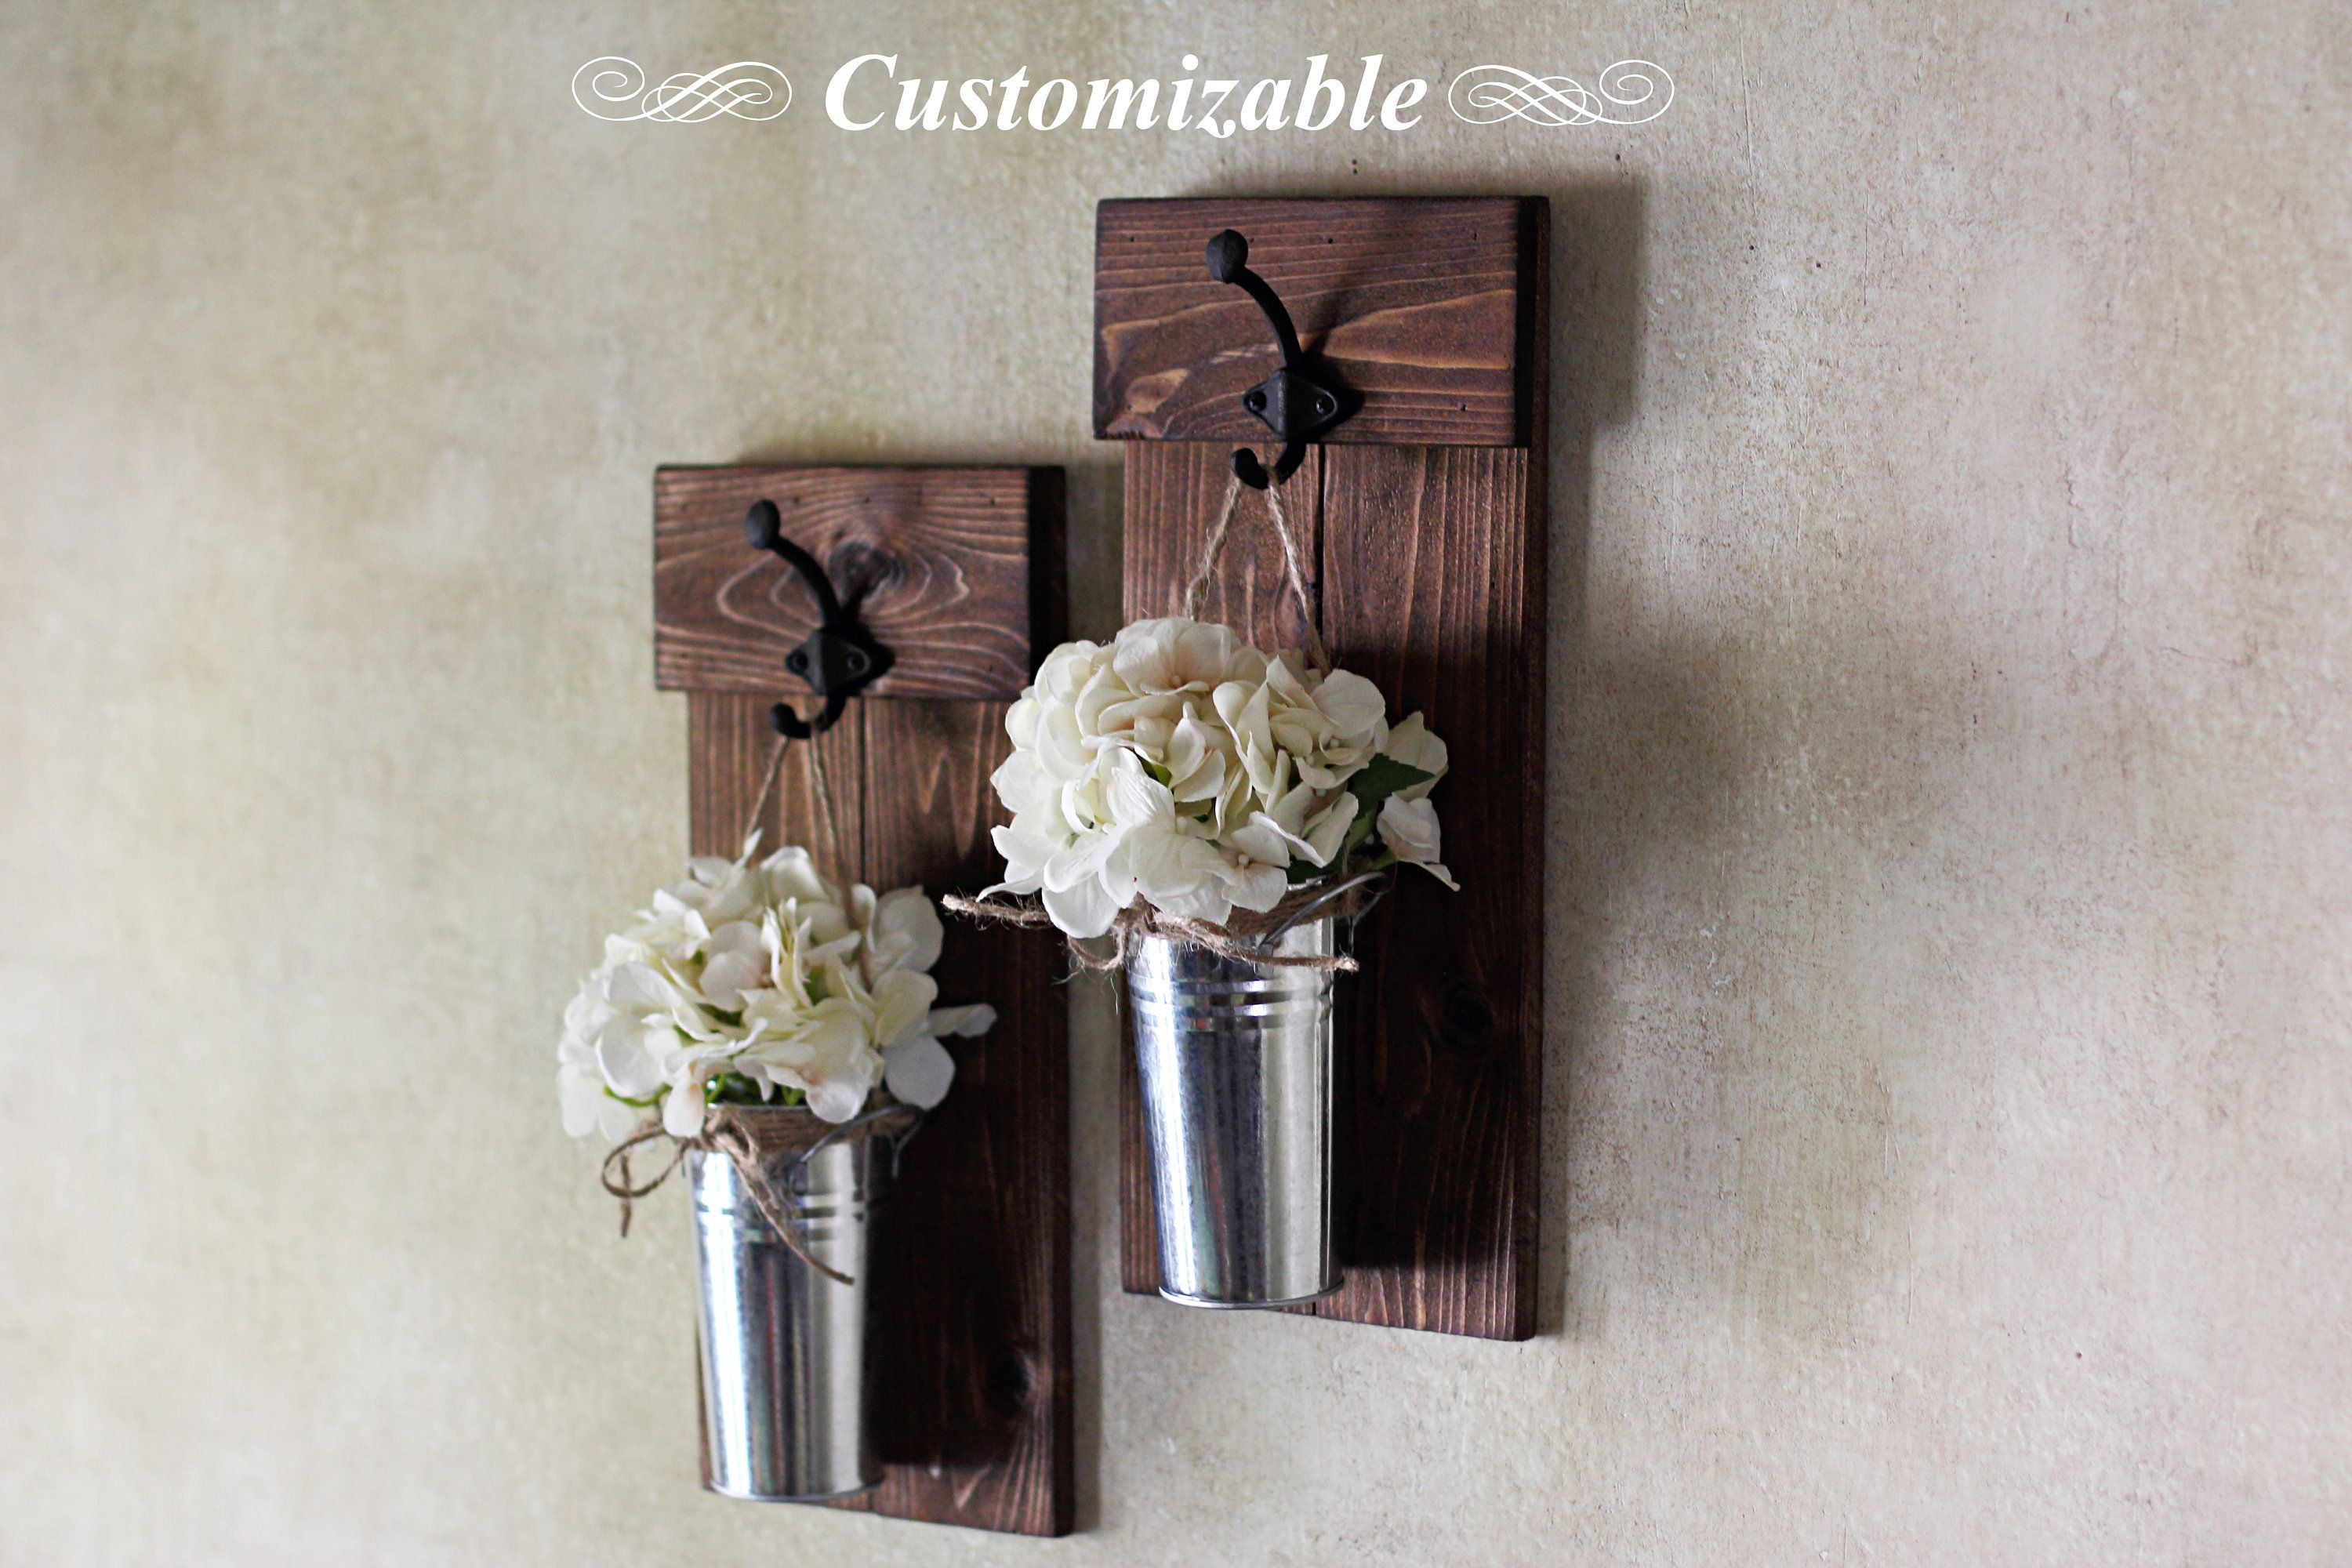 bathroom stainless pipe fixture home wall farmhouse vanity steel amazing industrial freestanding shower sconce decor light